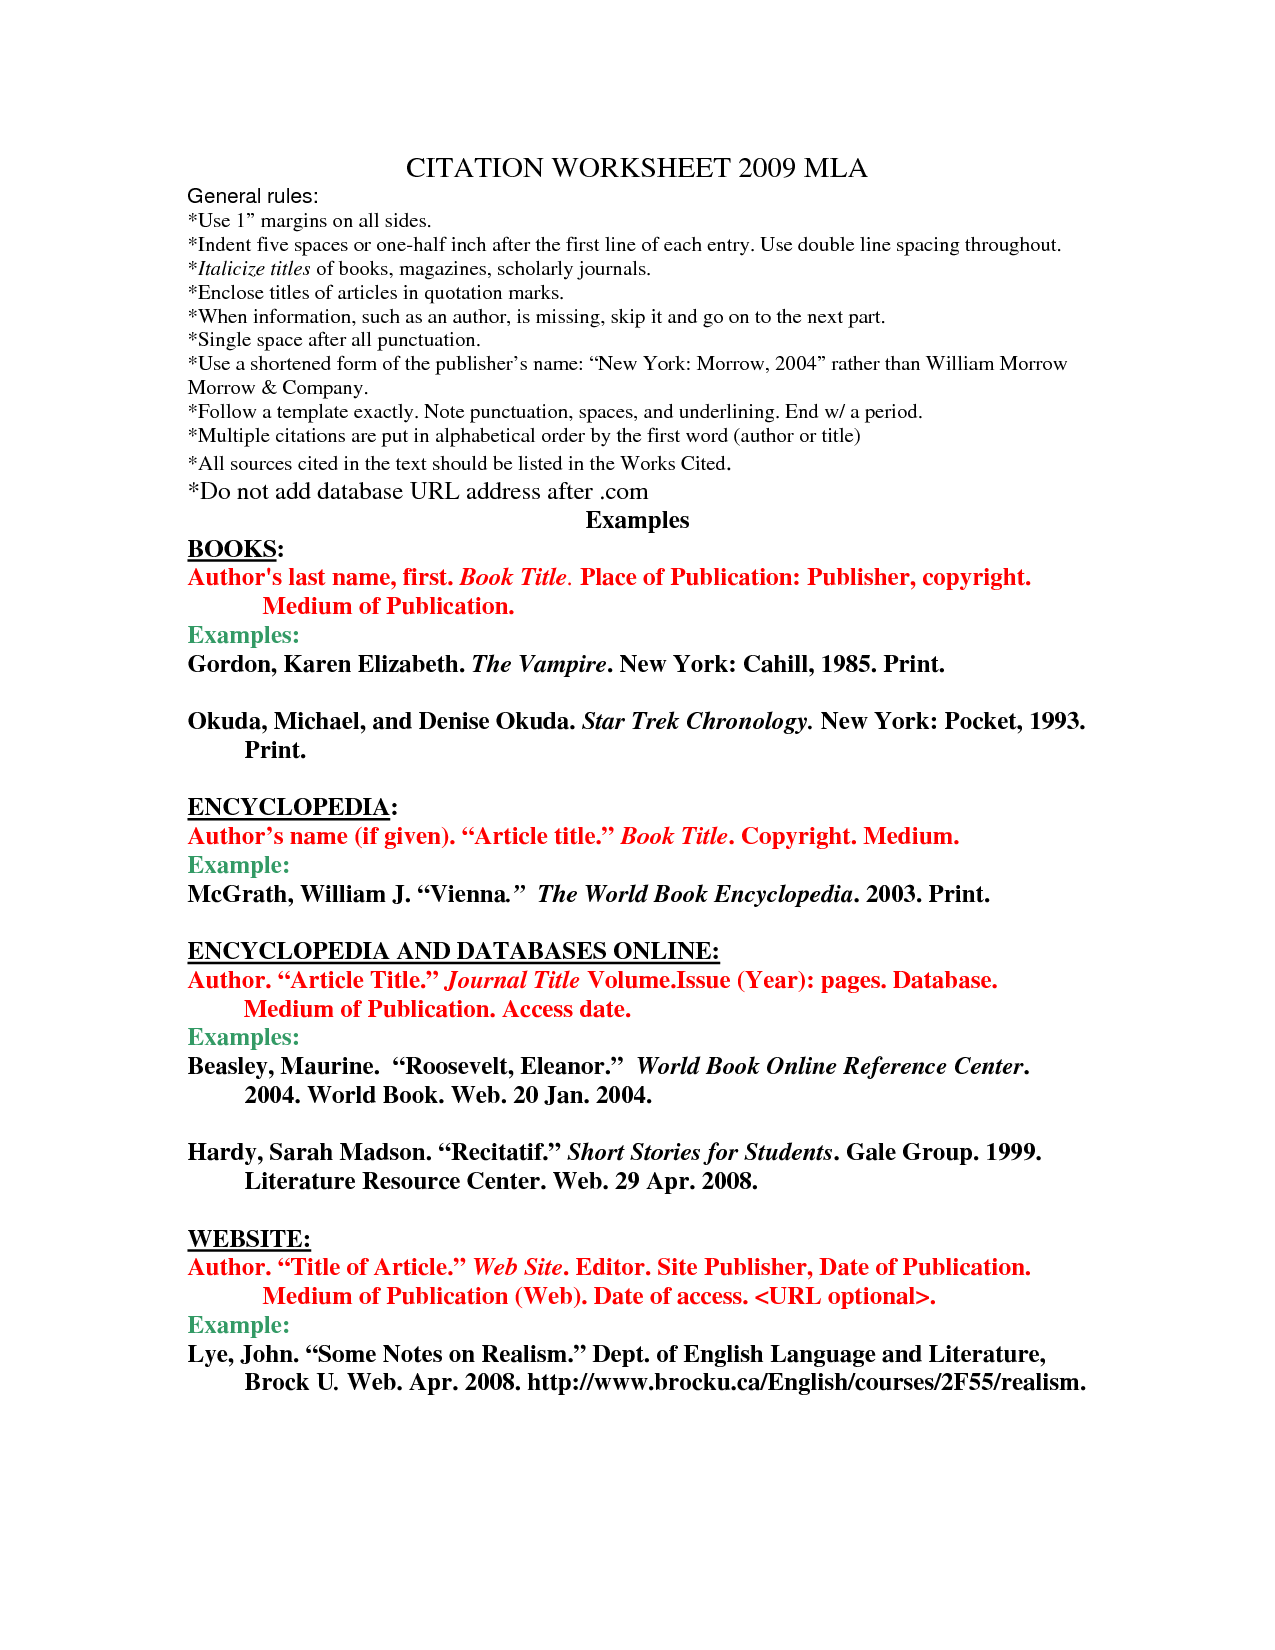 Mla Citation Practice Worksheet Worksheets For School - Getadating